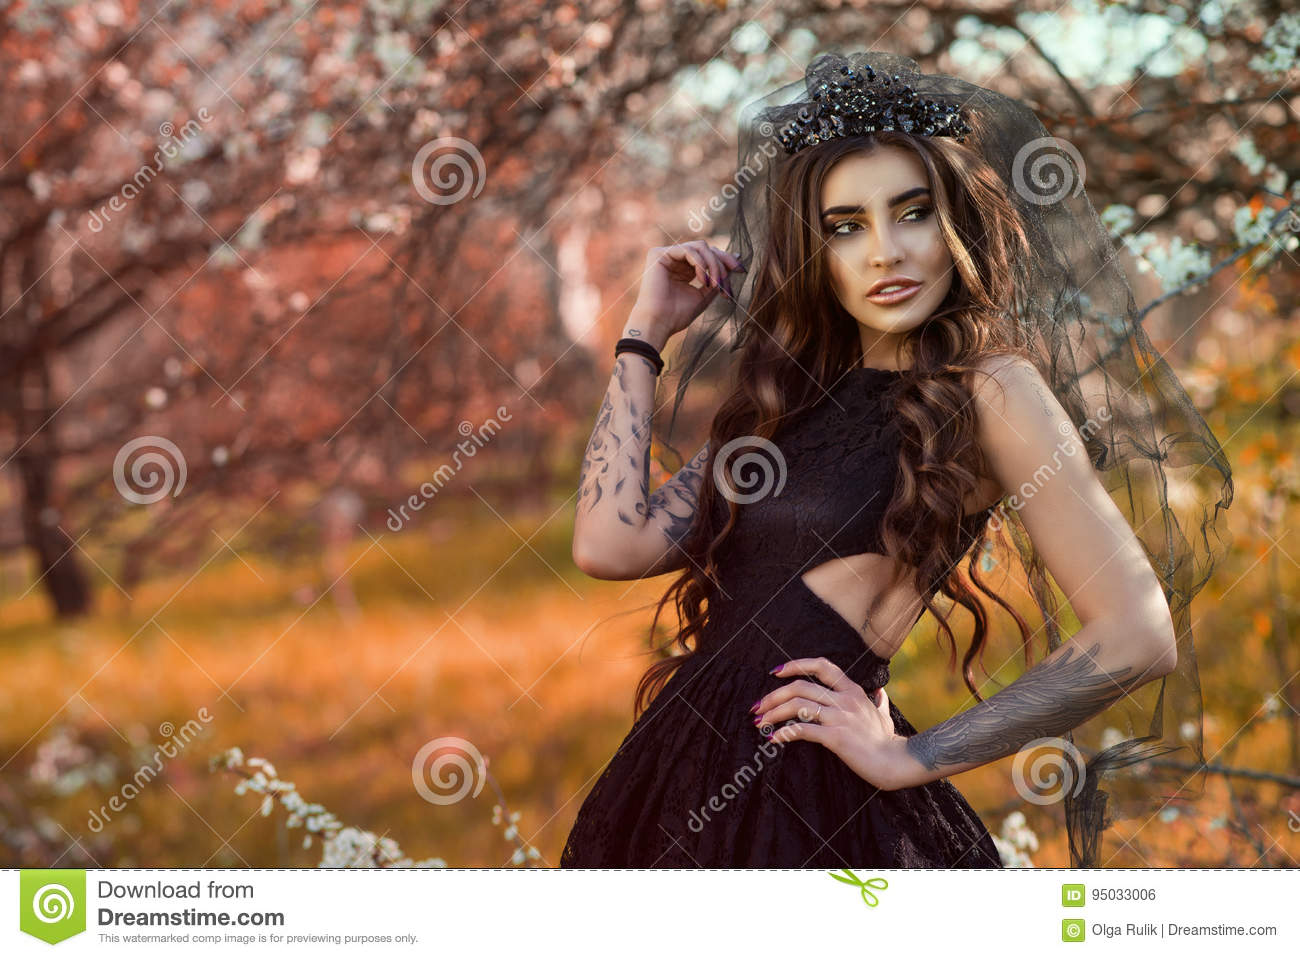 7bb6253e9f Chic dark-haired tattooed young woman wearing lace dress and black jewel  crown with veil